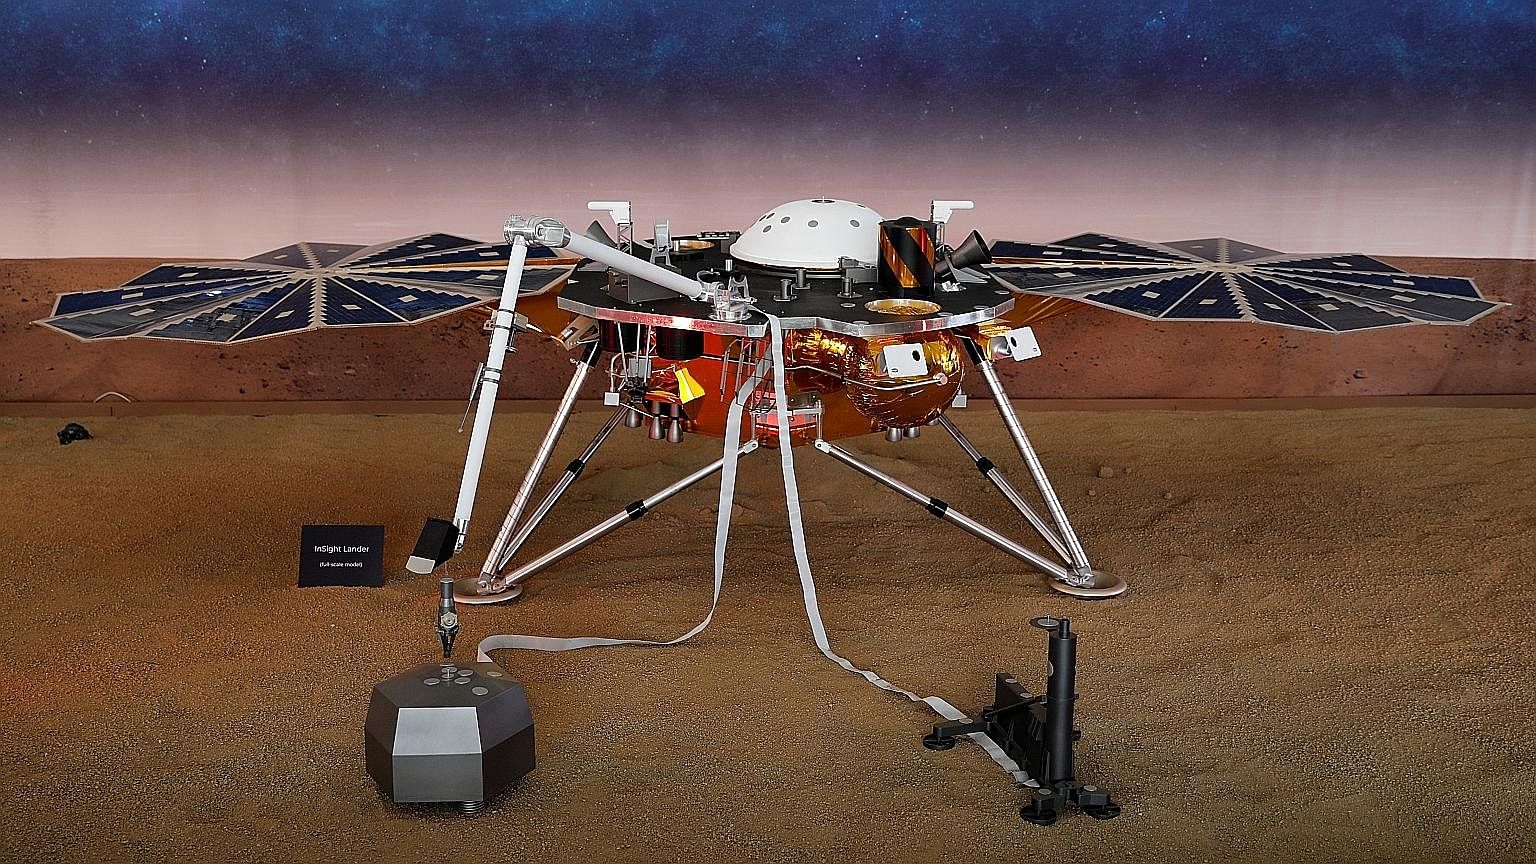 A life-size model of InSight, a robotic probe dedicated to studying Mars' deep interior, at the Jet Propulsion Laboratory.